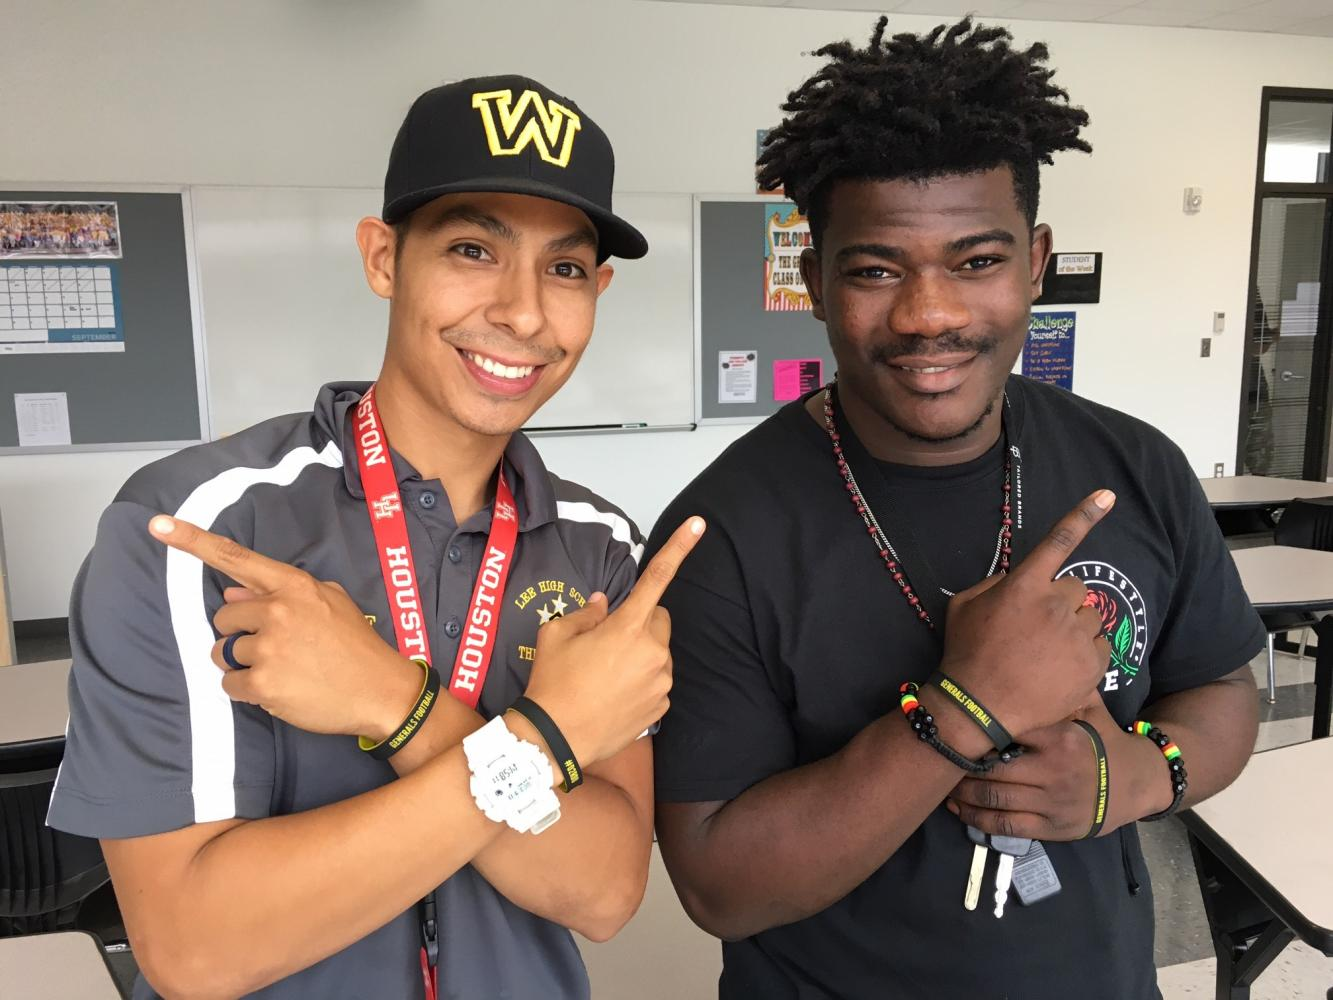 Coach Perez and Senior Defensive Lineman Chris Basilobo show off the football team's inspirational wrist bands that are for sale for $3.00